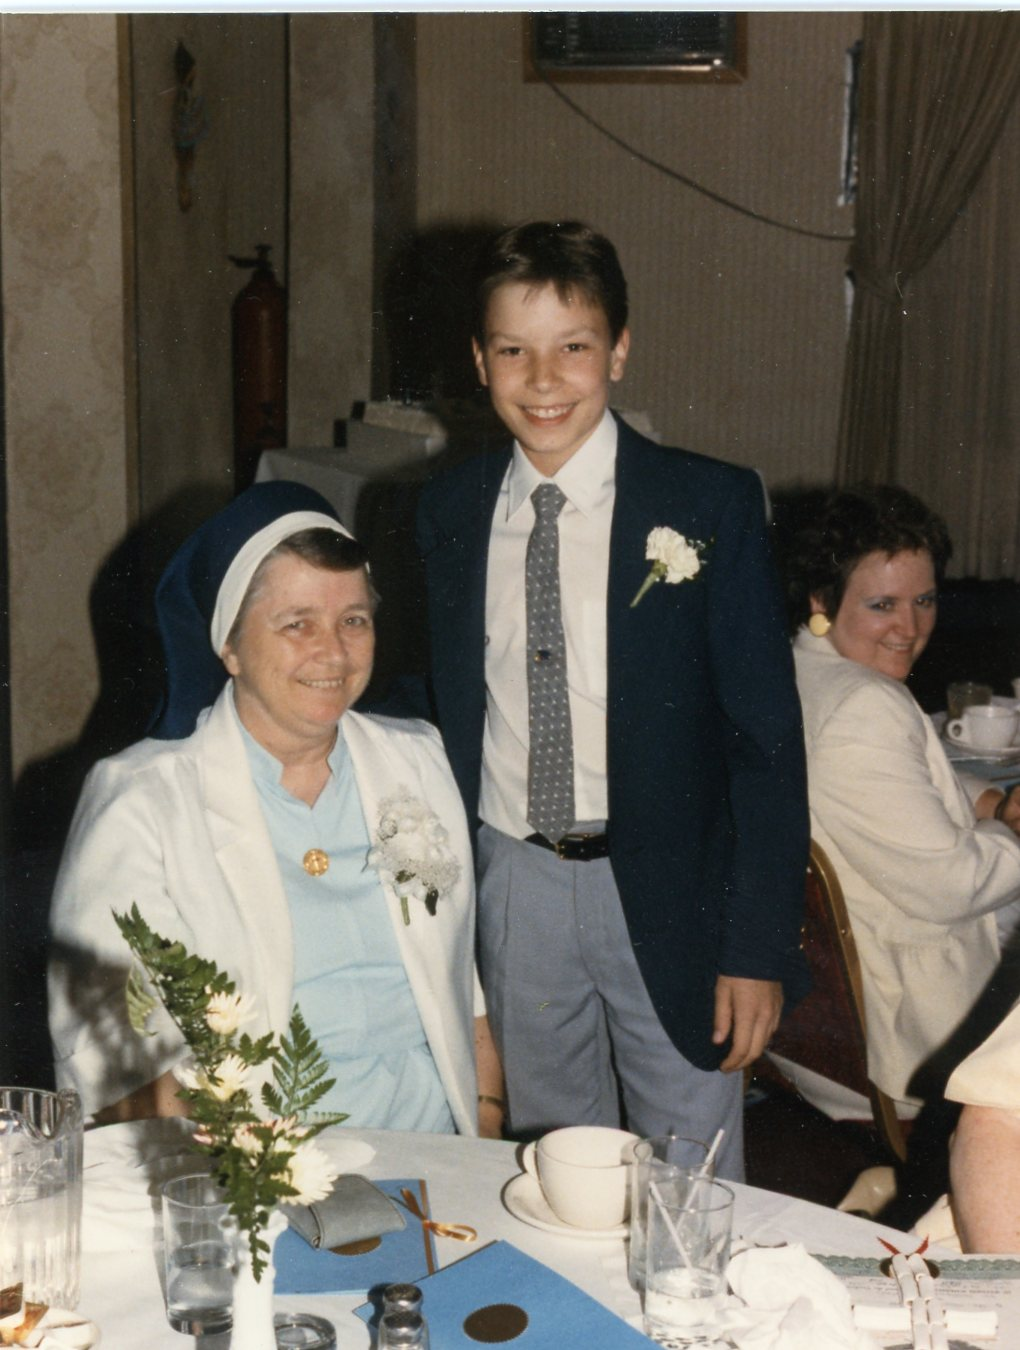 . Jimmy Fallon and Margaret Taylor, then principal of St. Mary of the Snow Catholic School. (Photo provided by Maria Gruen)